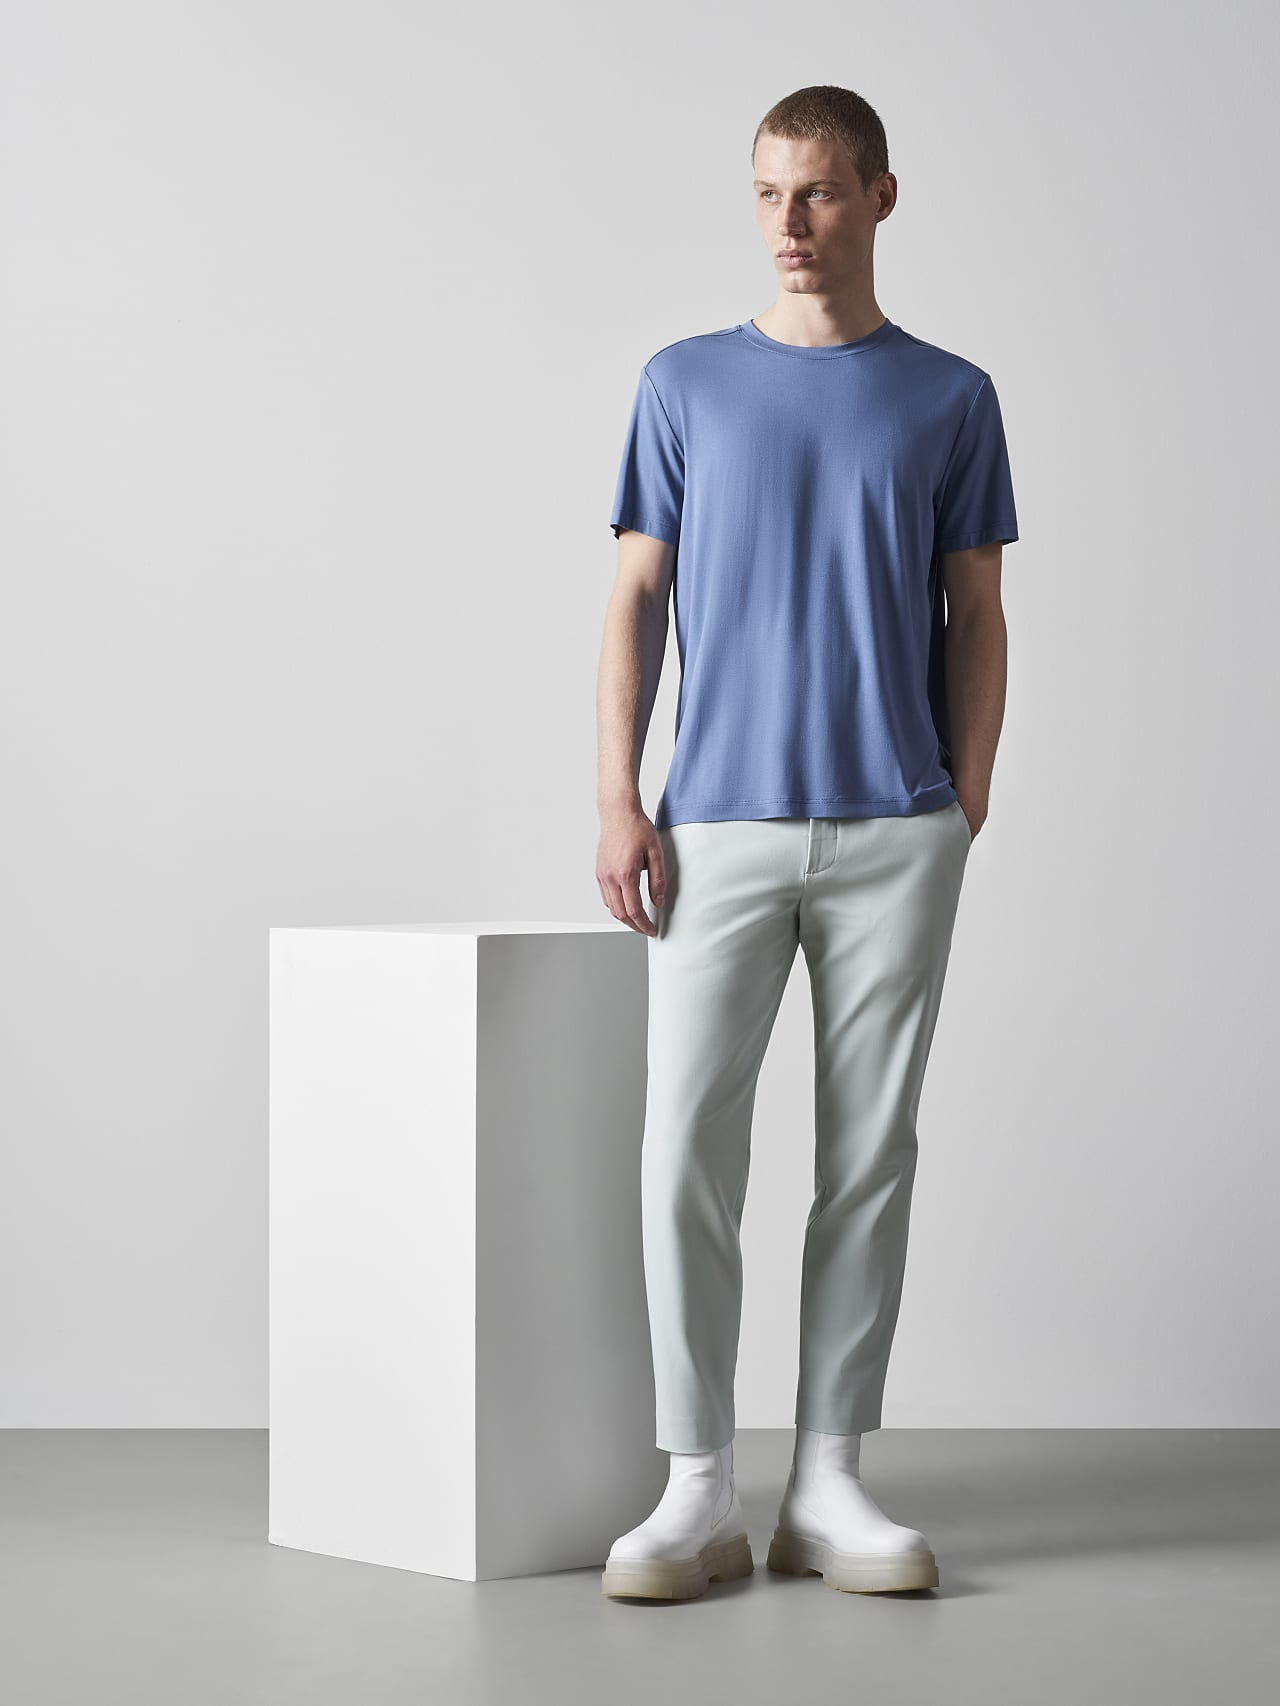 PELAN V1.Y5.02 Tapered Pants with Pleats Pale Blue  Model shot Alpha Tauri